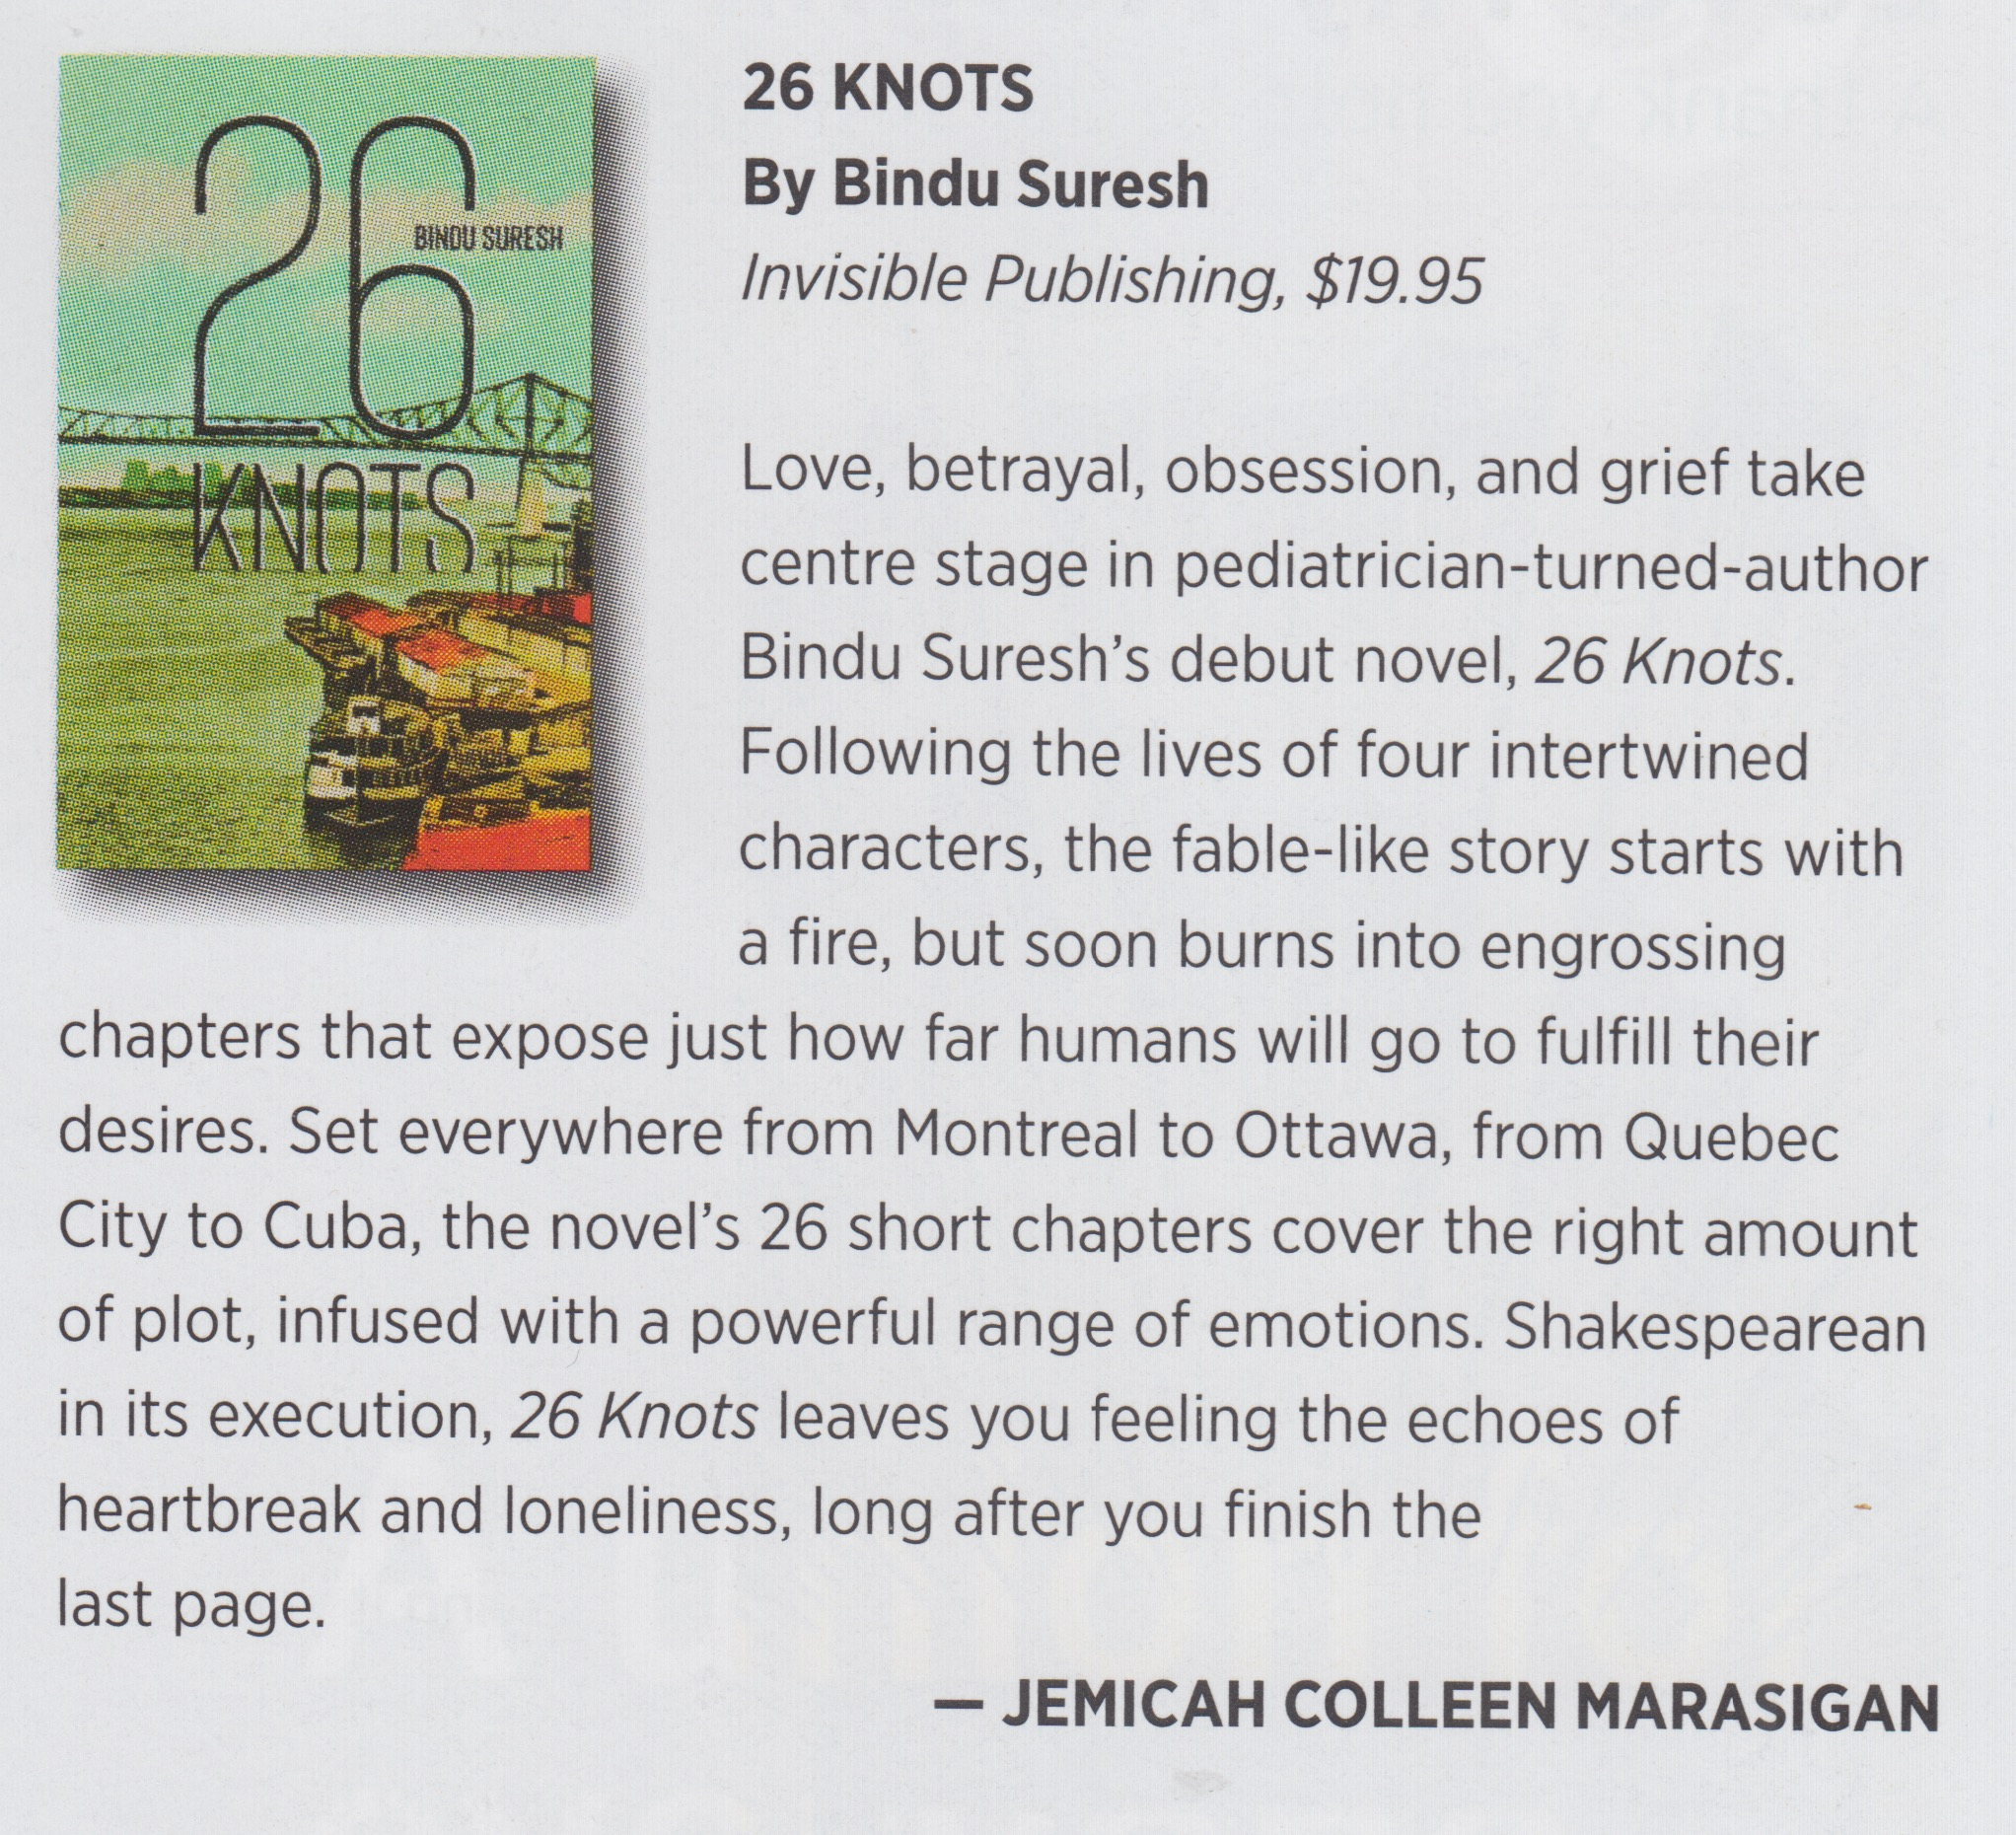 26 Knots Review, THIS Magazine